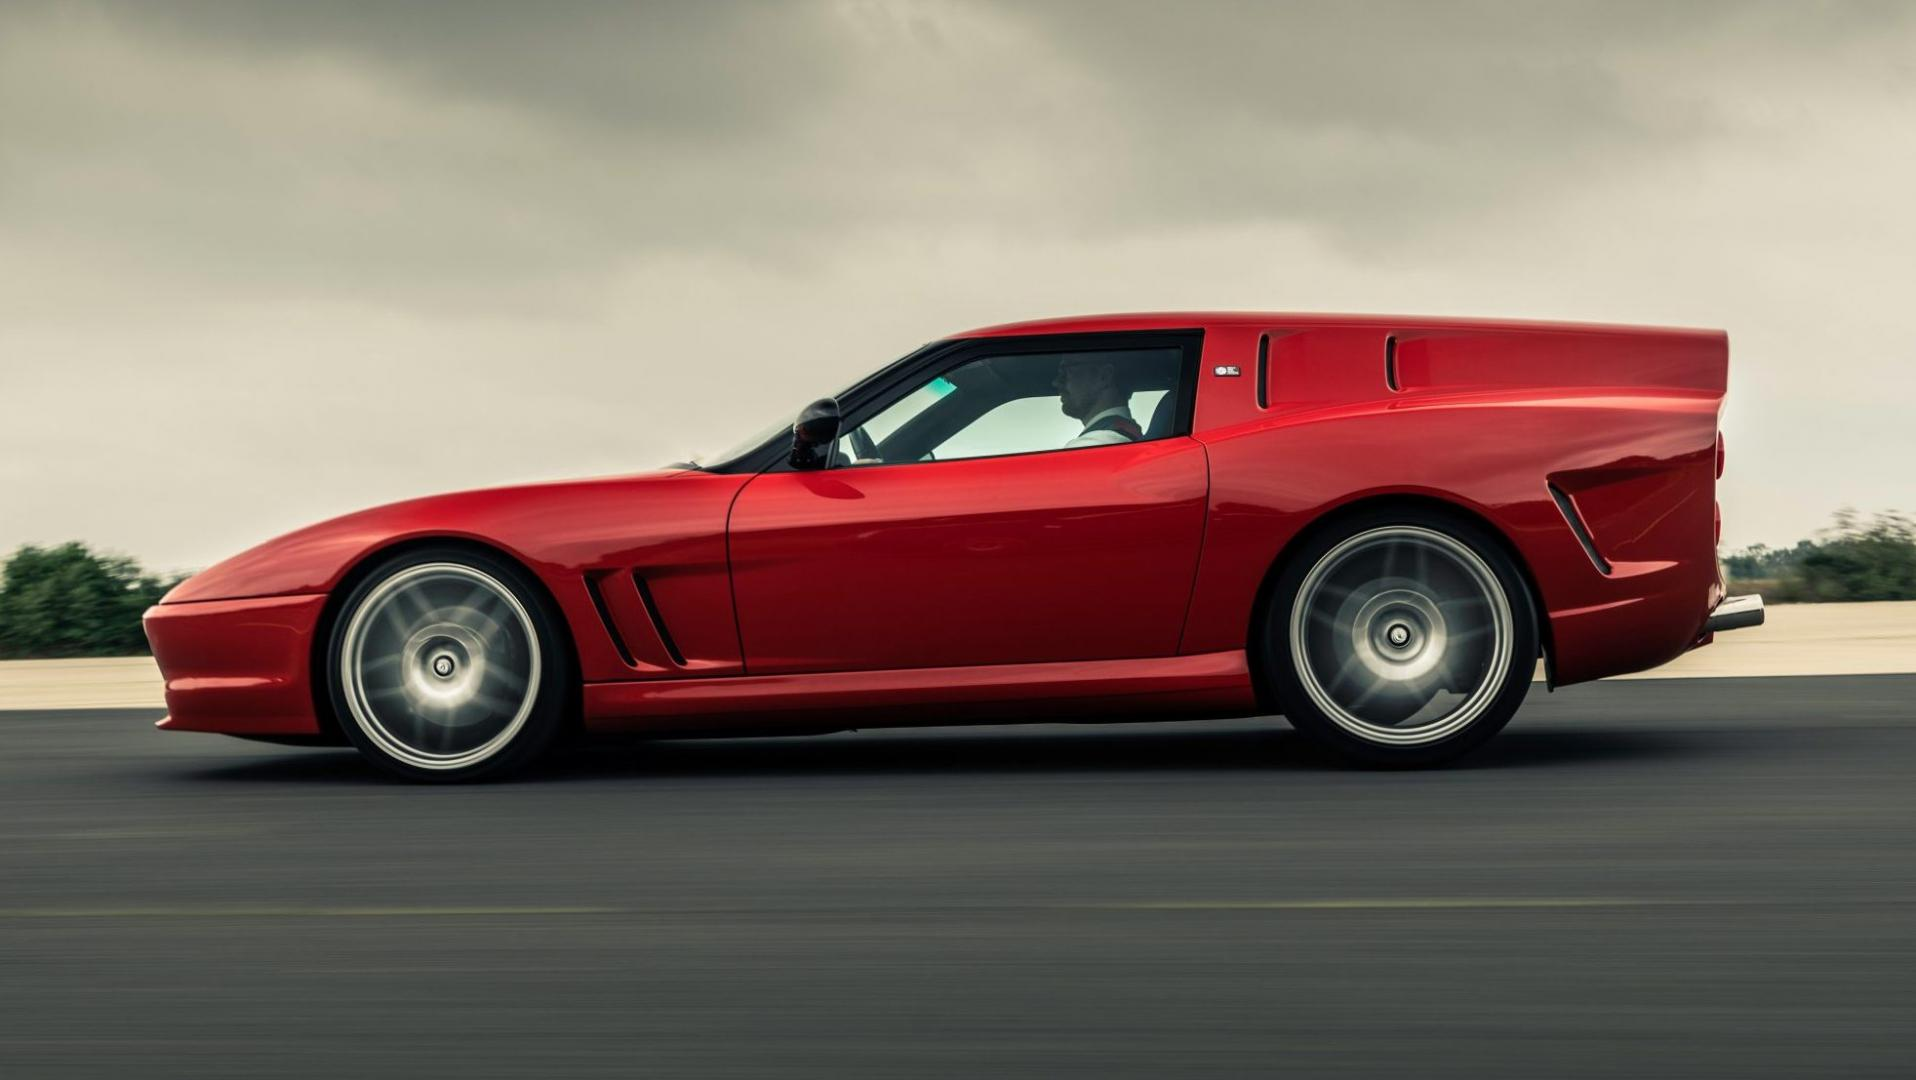 Zijkant en daklijn Breadvan Hommage is een Ferrari 550 Shooting Brake